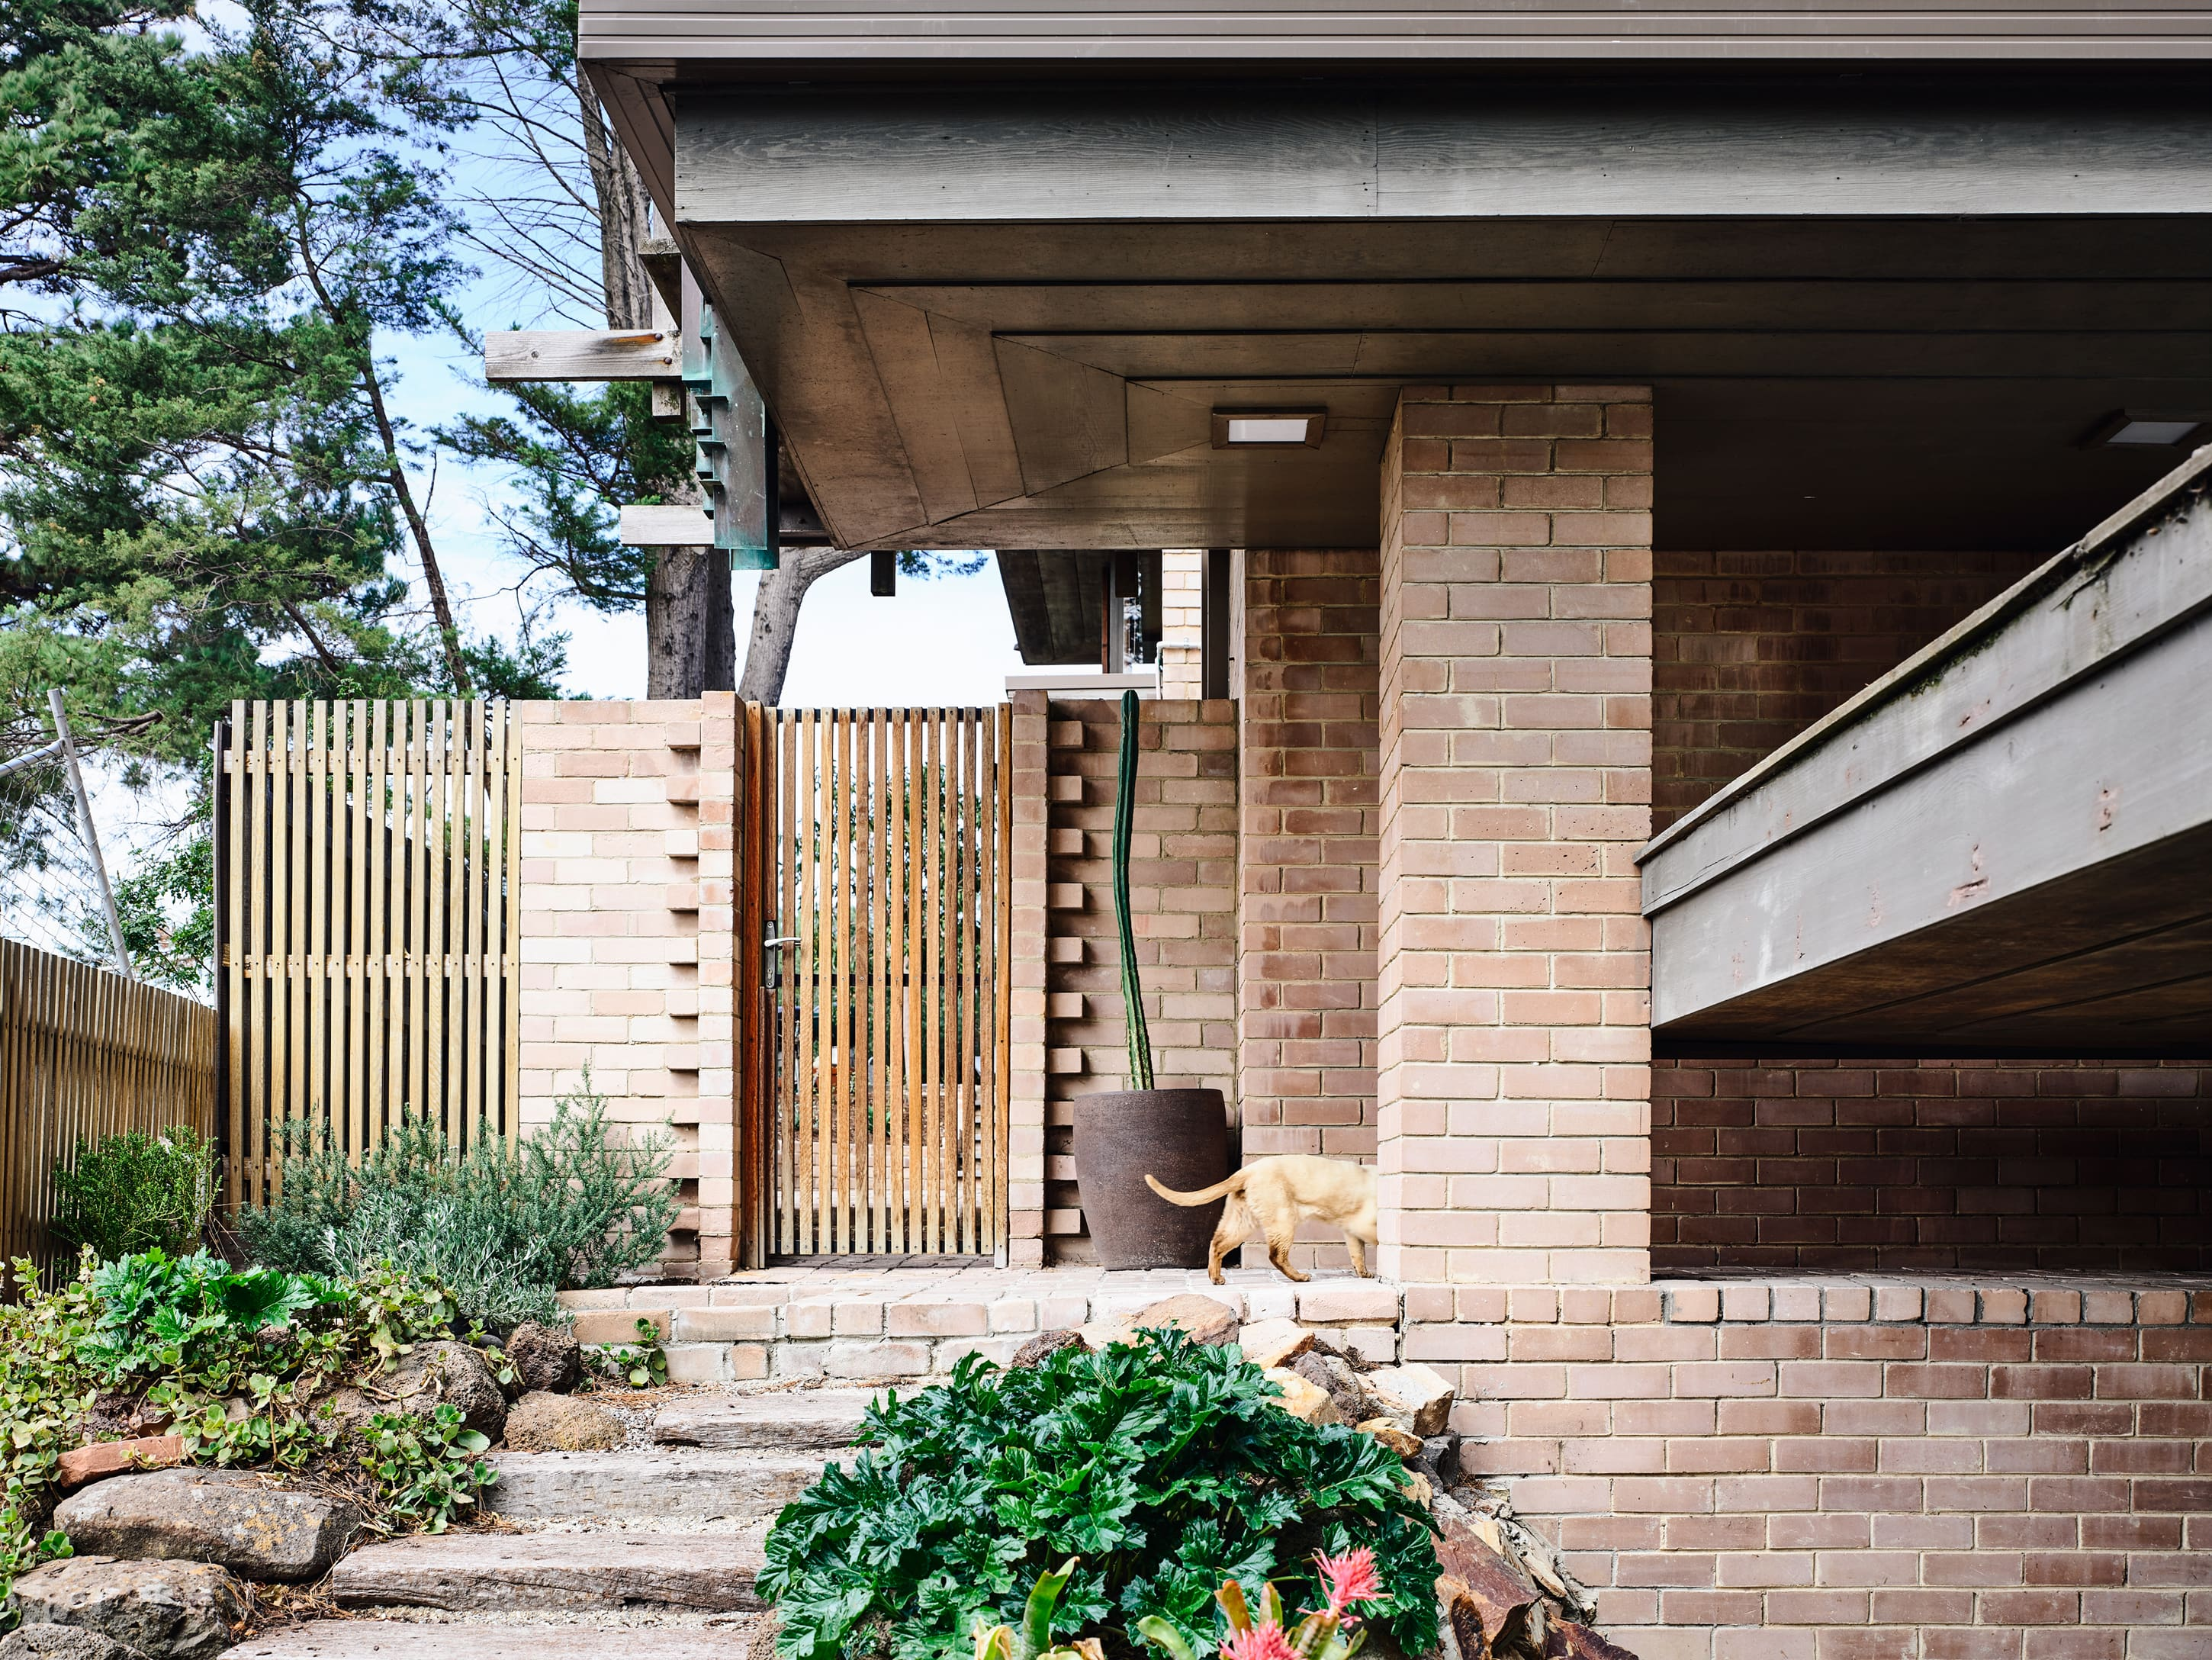 Gallery Of The Godsell House By David Godsell Local Australian Architecture & Design Beaumaris, Vic Image 2